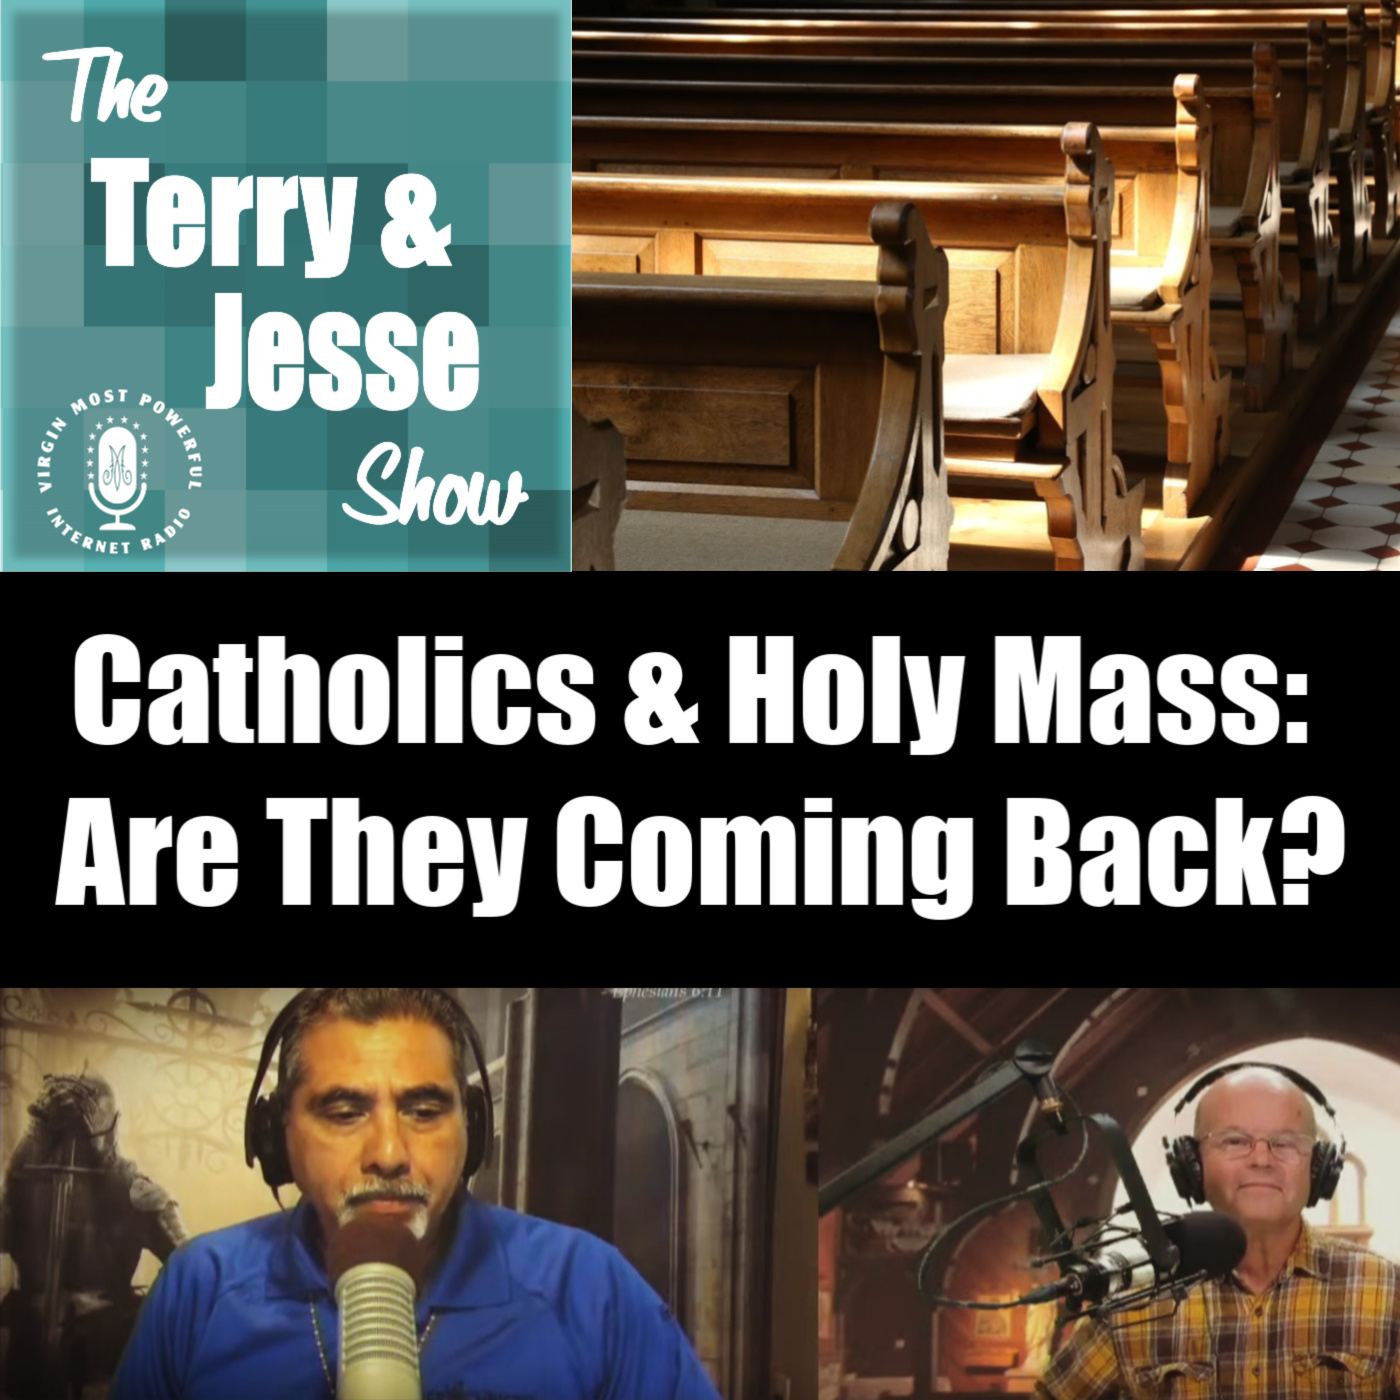 22 Jun 2020 – Catholics & Holy Mass, are They Coming Back?